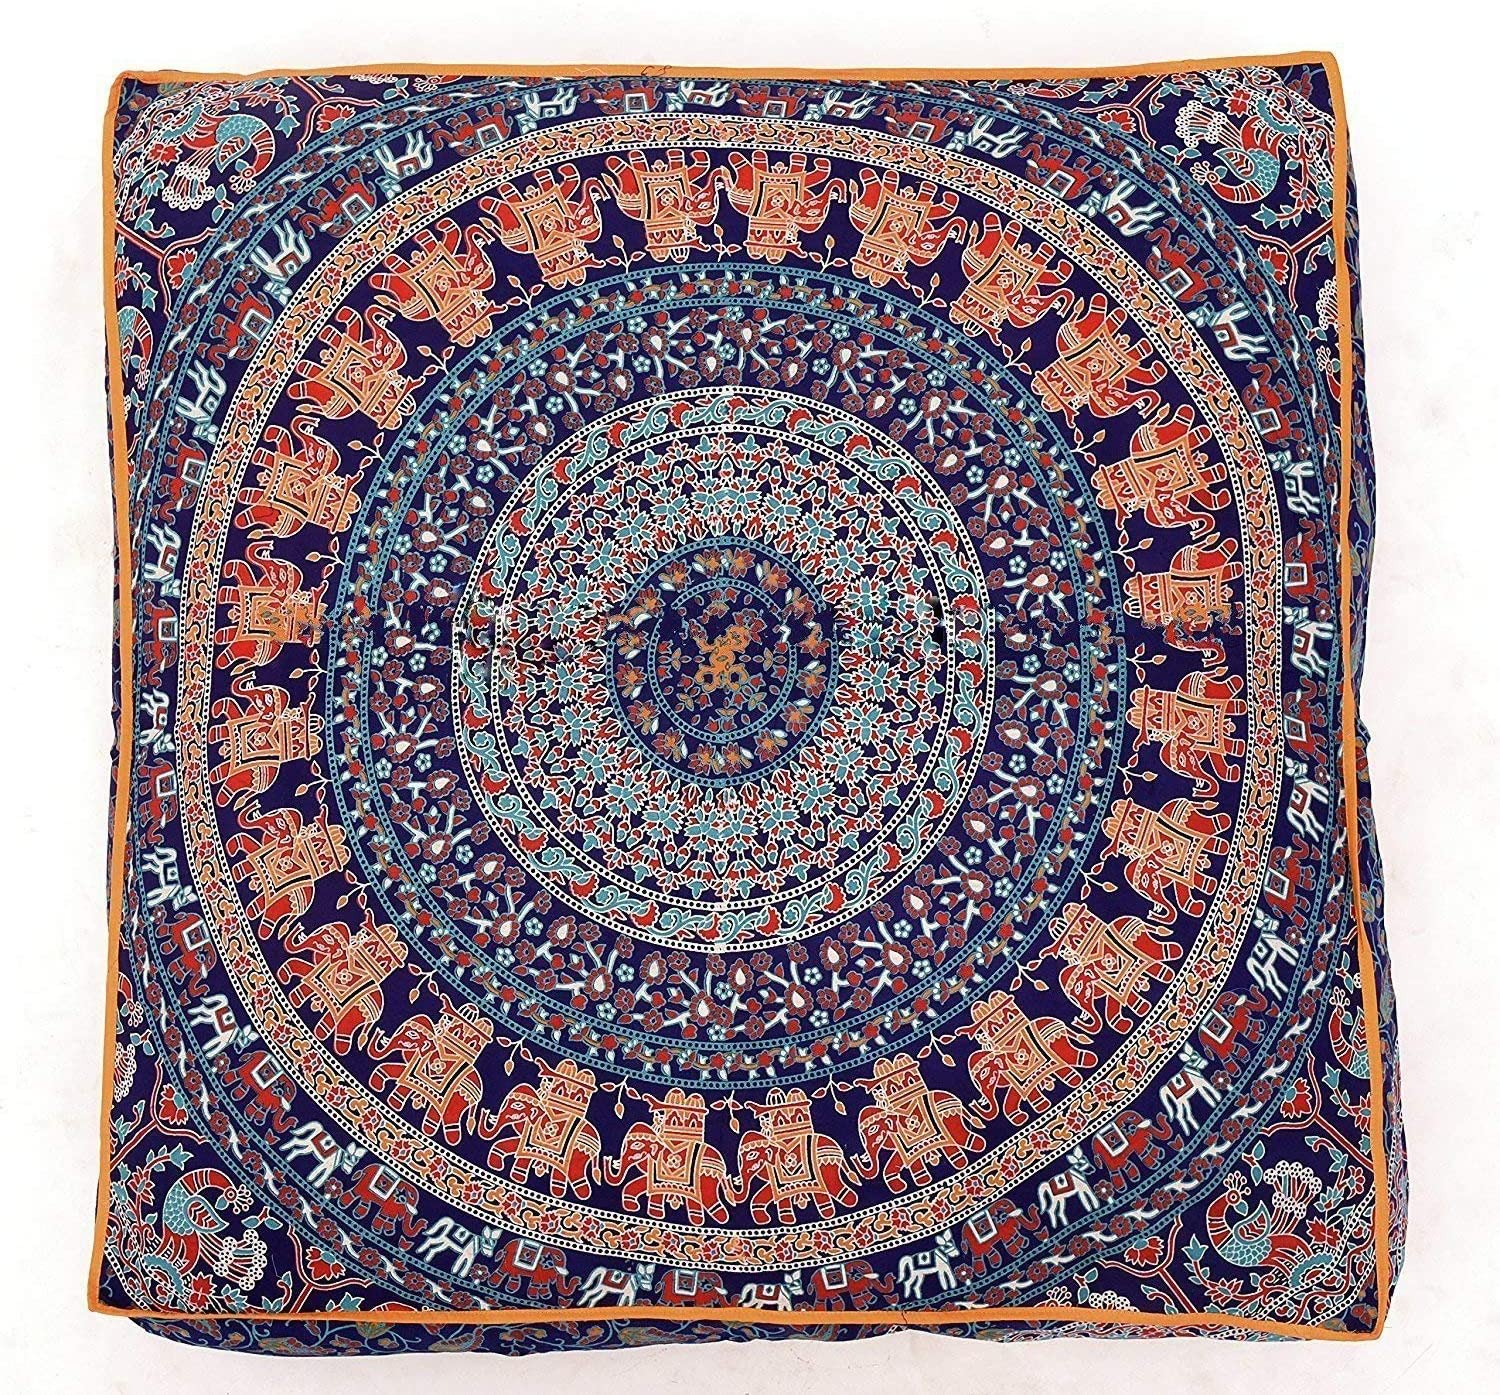 Traditional Jaipur Square Mandala Floor Cushion Decorative Throw Pillowcase 35 x 35 inches Pouf Boho Ottoma Pom Pom Outdoor Cushion Cover Pillow Sham Pet Bed: Only Cover